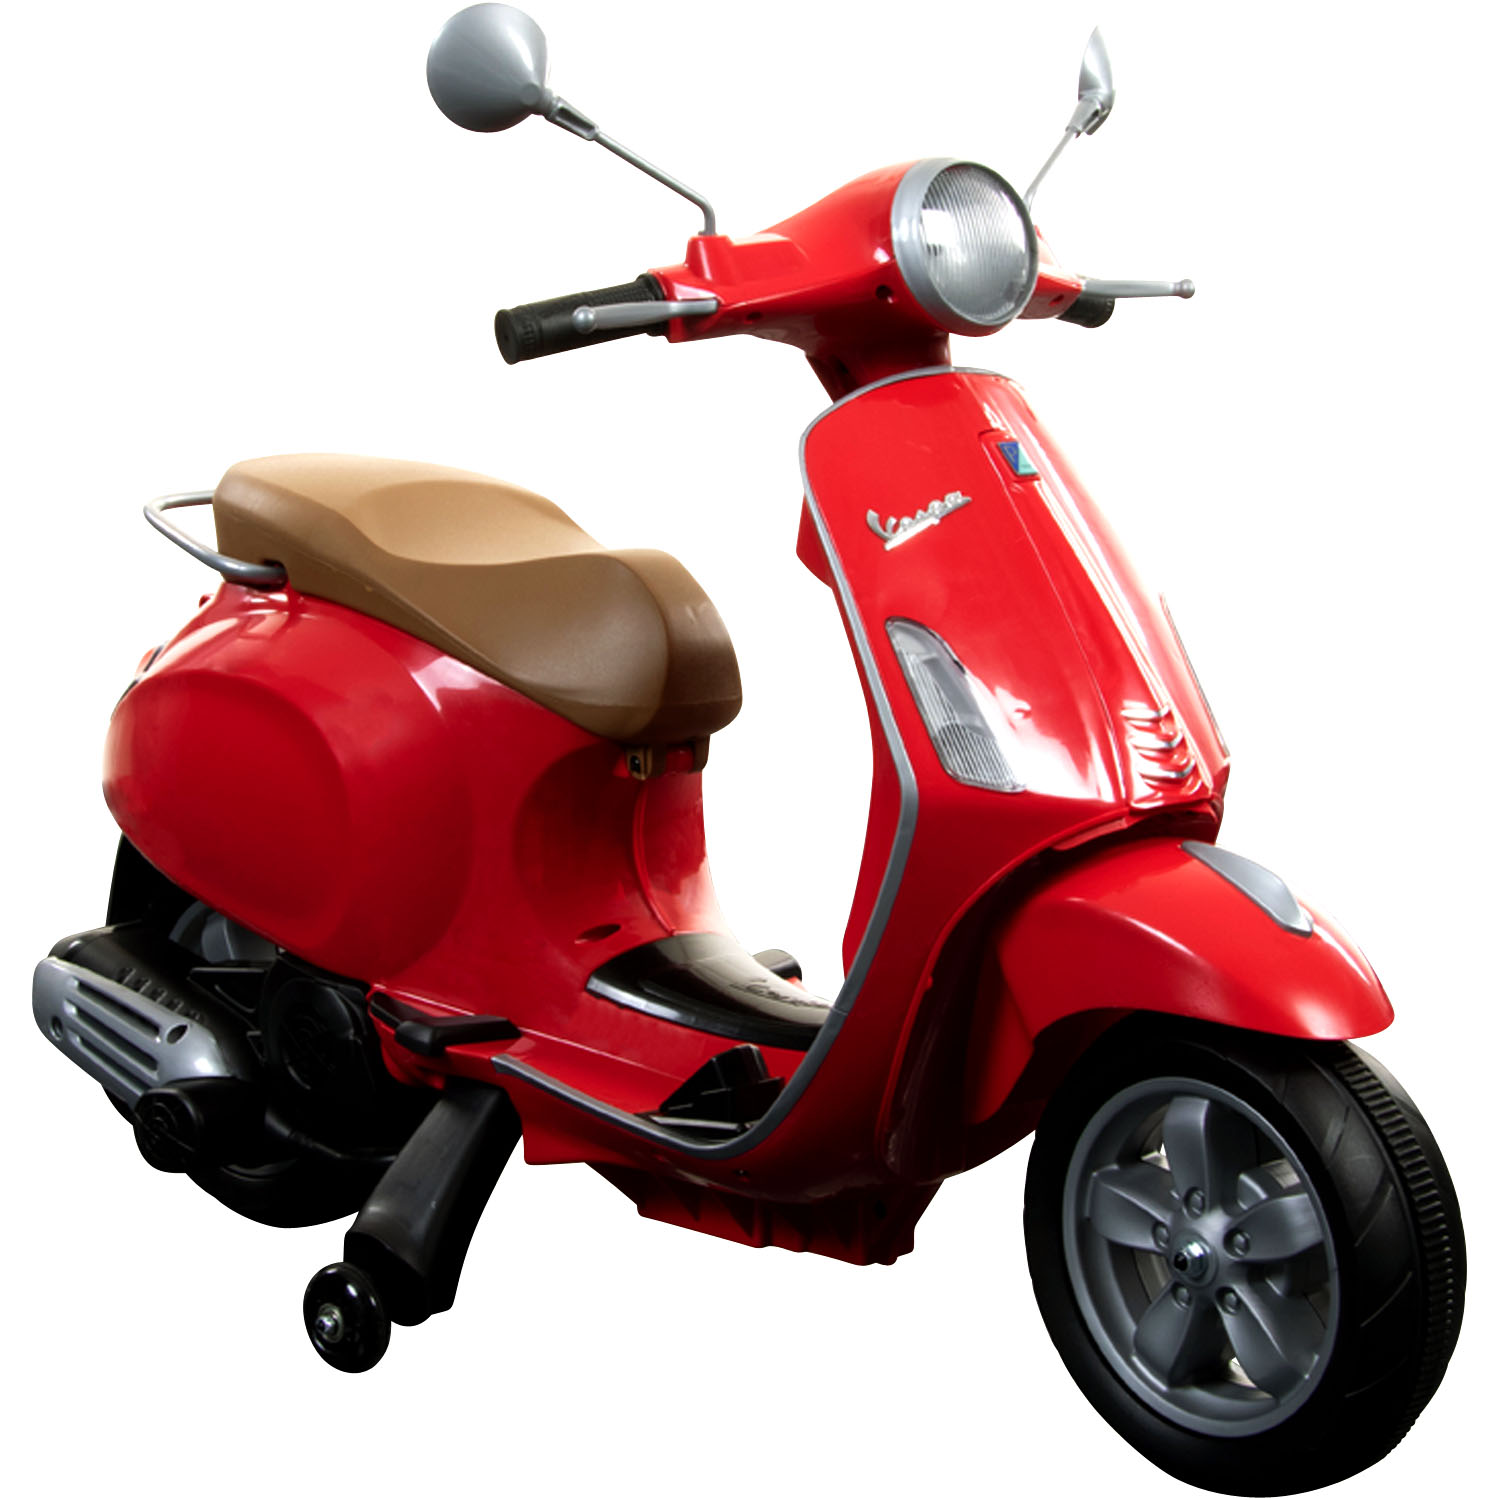 Kinder Fahrzeug Children's Vehicle Vespa Primavera 6v Children Scooter